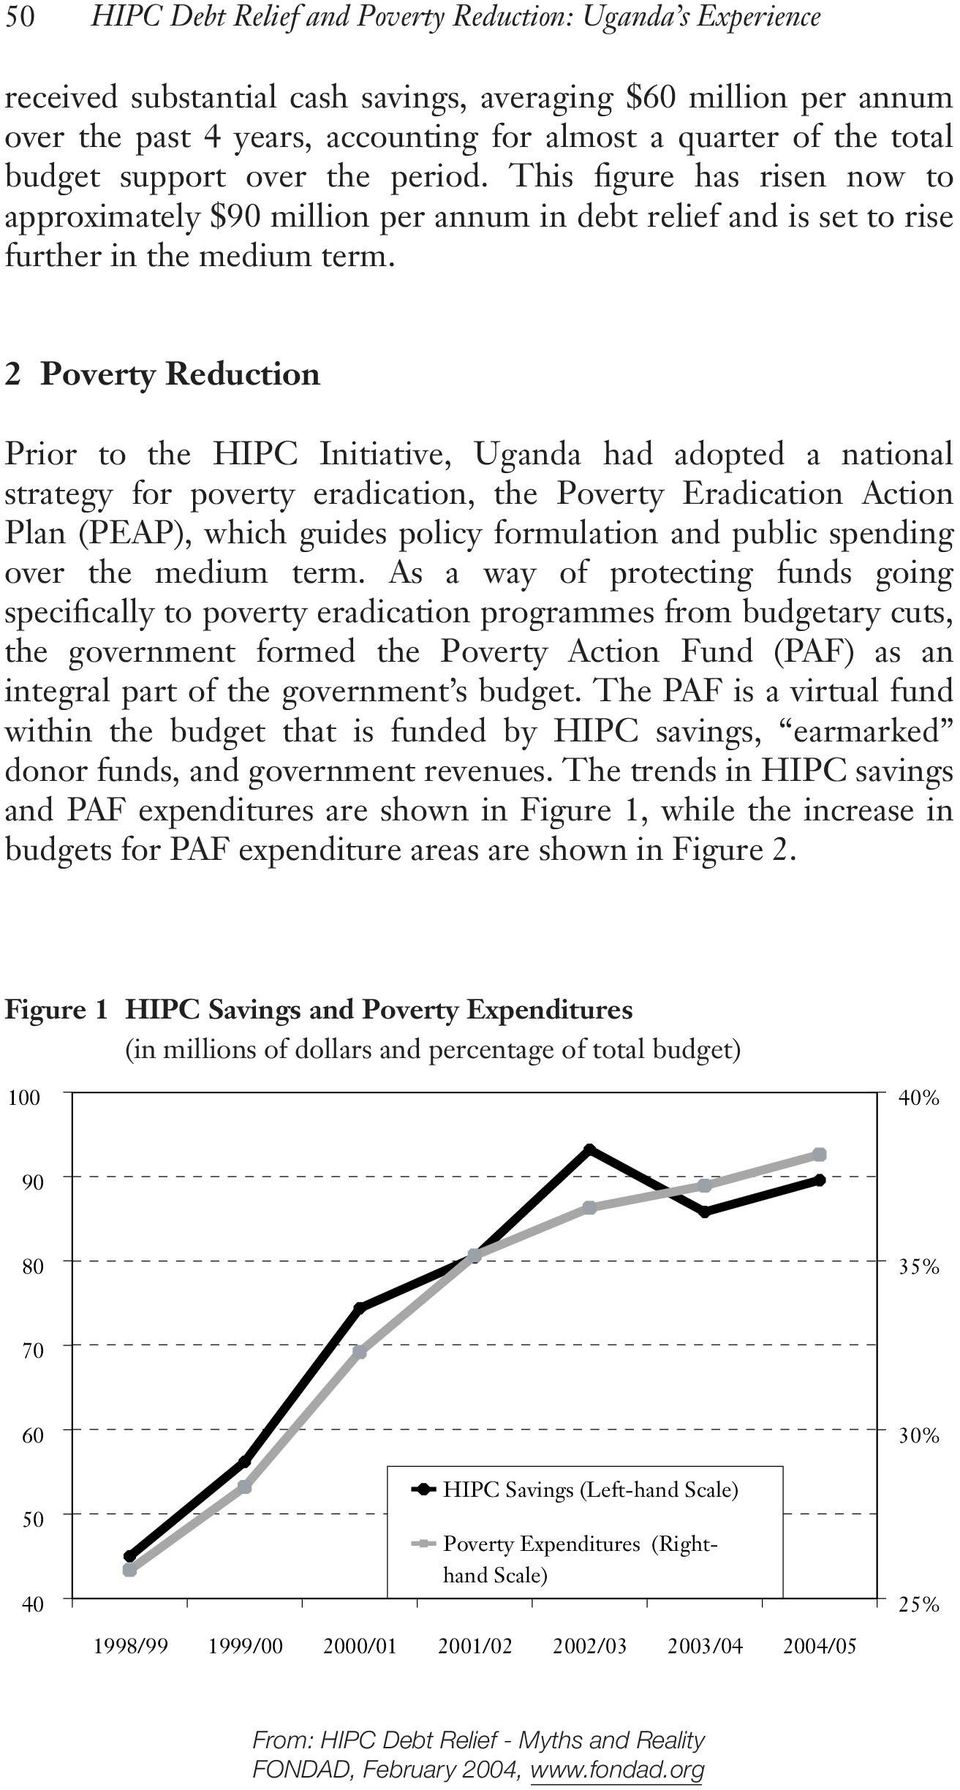 2 Poverty Reduction Prior to the HIPC Initiative, Uganda had adopted a national strategy for poverty eradication, the Poverty Eradication Action Plan (PEAP), which guides policy formulation and